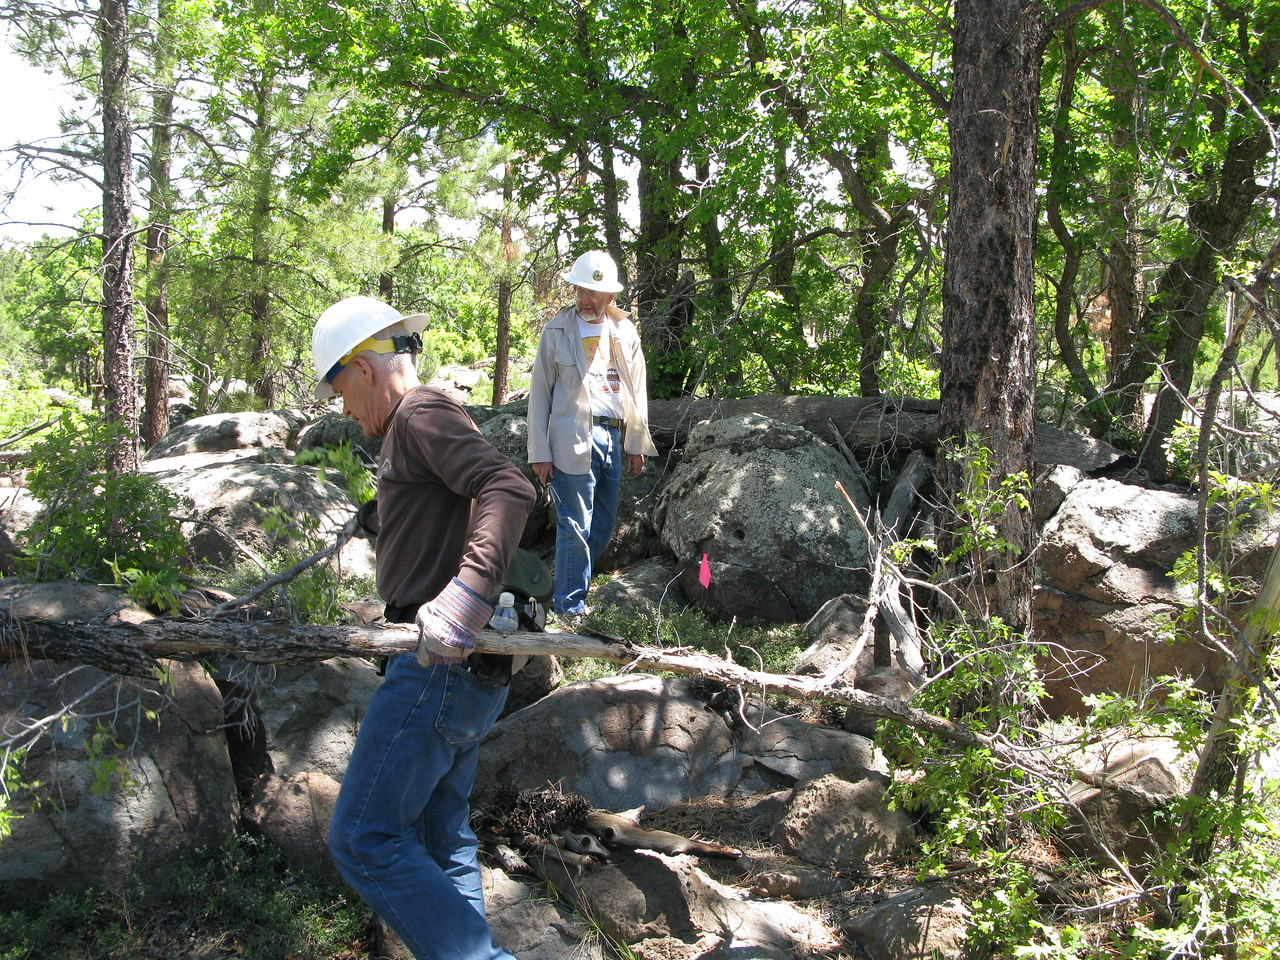 Steve Owen and Dick Cochran clear branches and vegetation to uncover wreckage hidden by years of forest growth. In some cases, a metal detector was used to locate aircraft fragments.